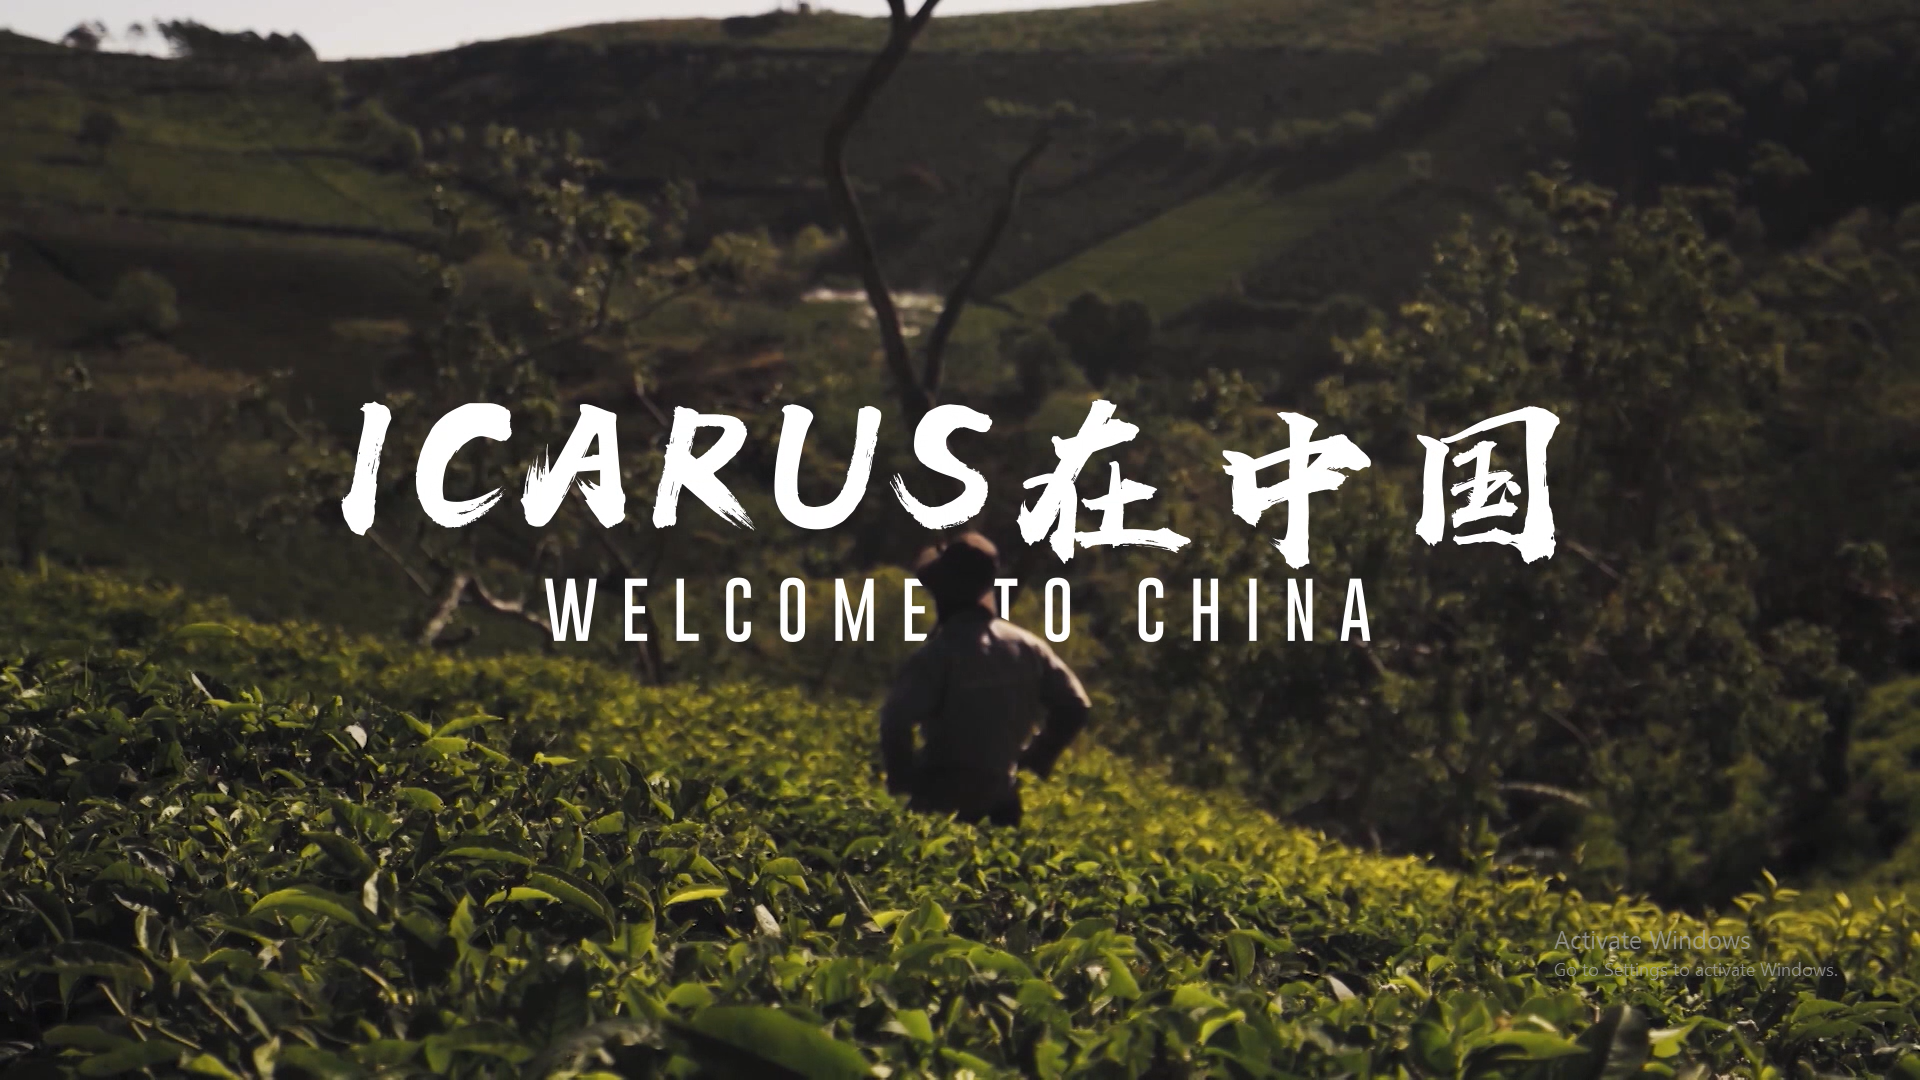 ICARUS Sports teams up with Tourism Authorities